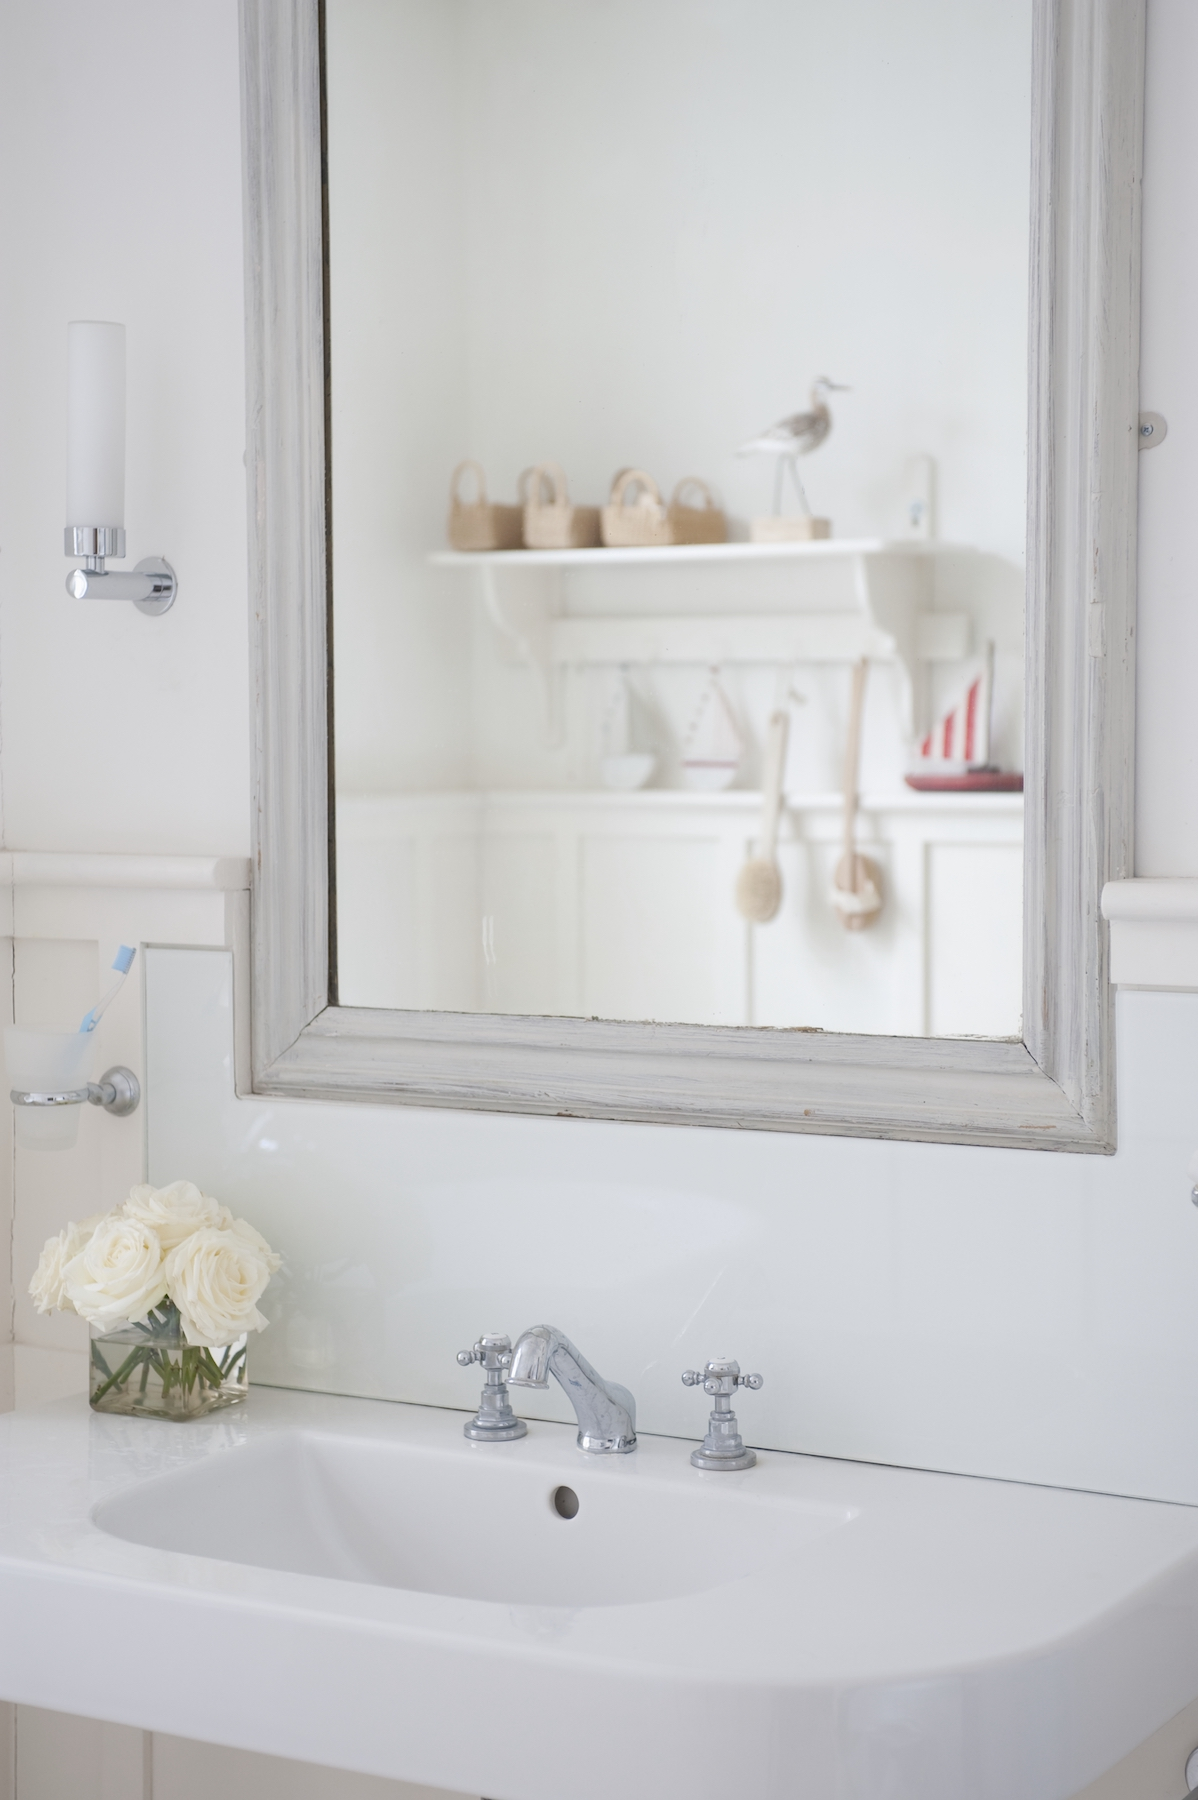 How to whiten the bath at home correctly